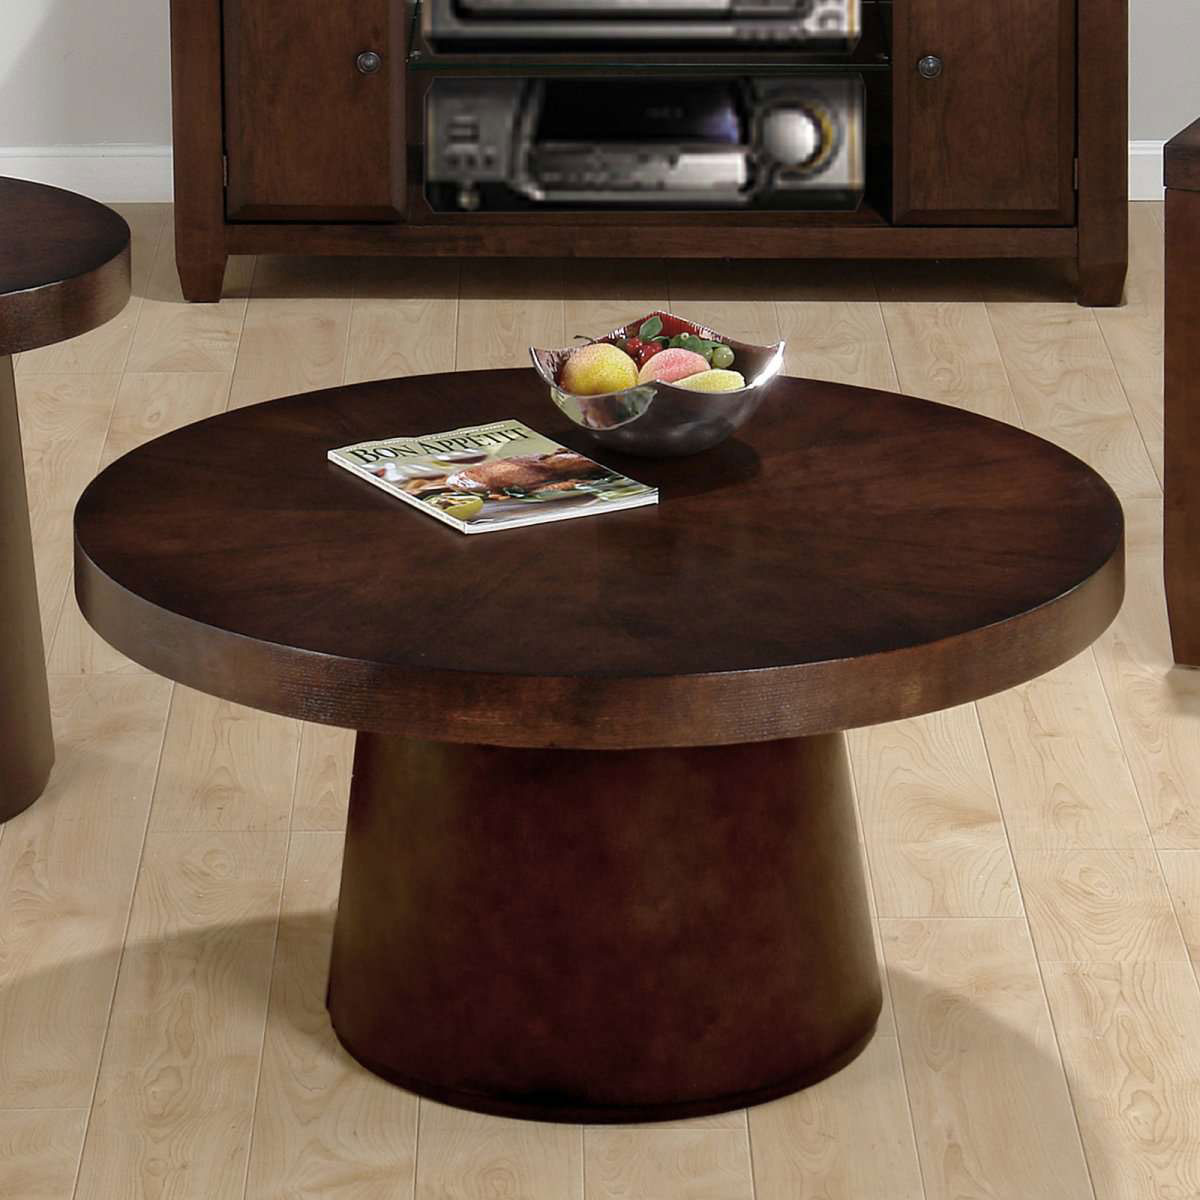 Small Round Coffee Tables Futuristic Kitchen Design Contemporary Ideas Living Room Furniture Black Wood Round Coffee Table (View 9 of 10)